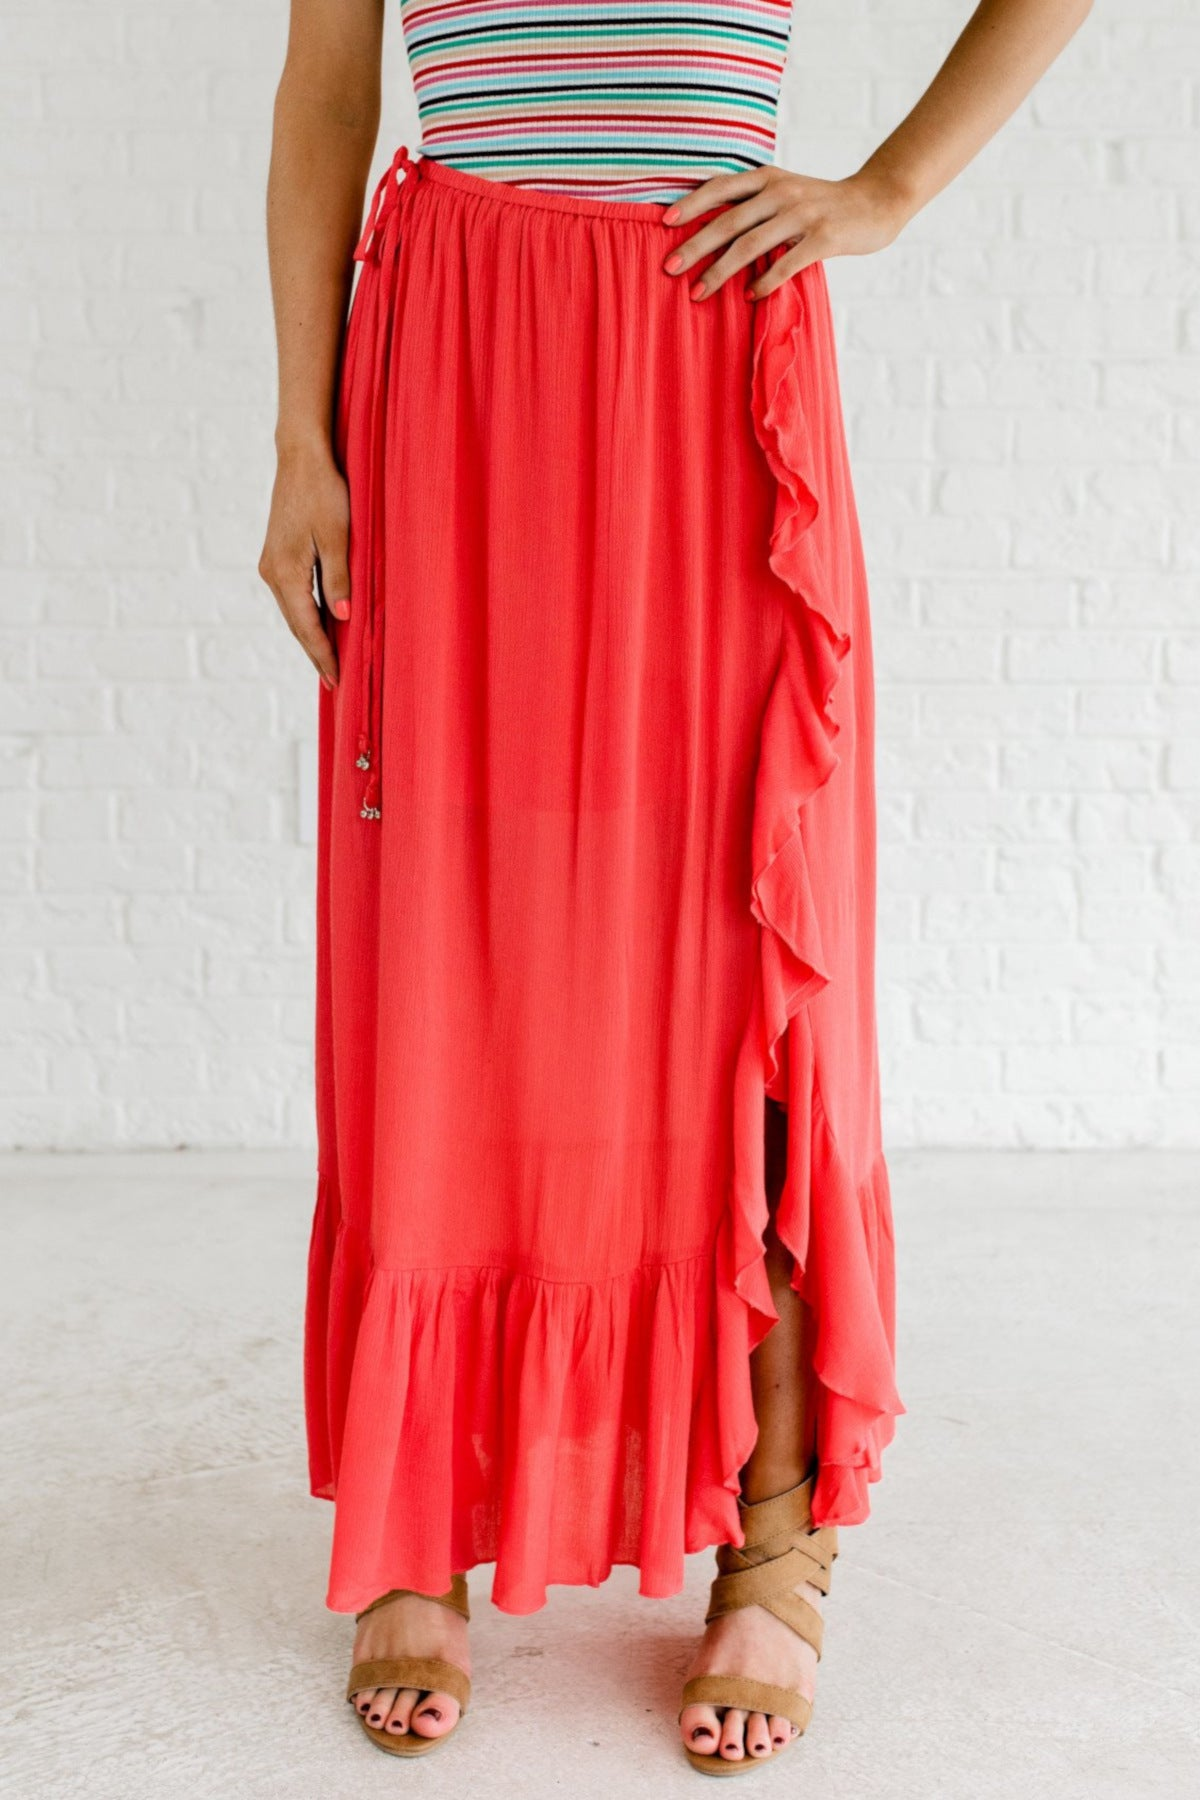 e24640a530b Coral Pink Ruffle Maxi Length Boutique Skirts for Women